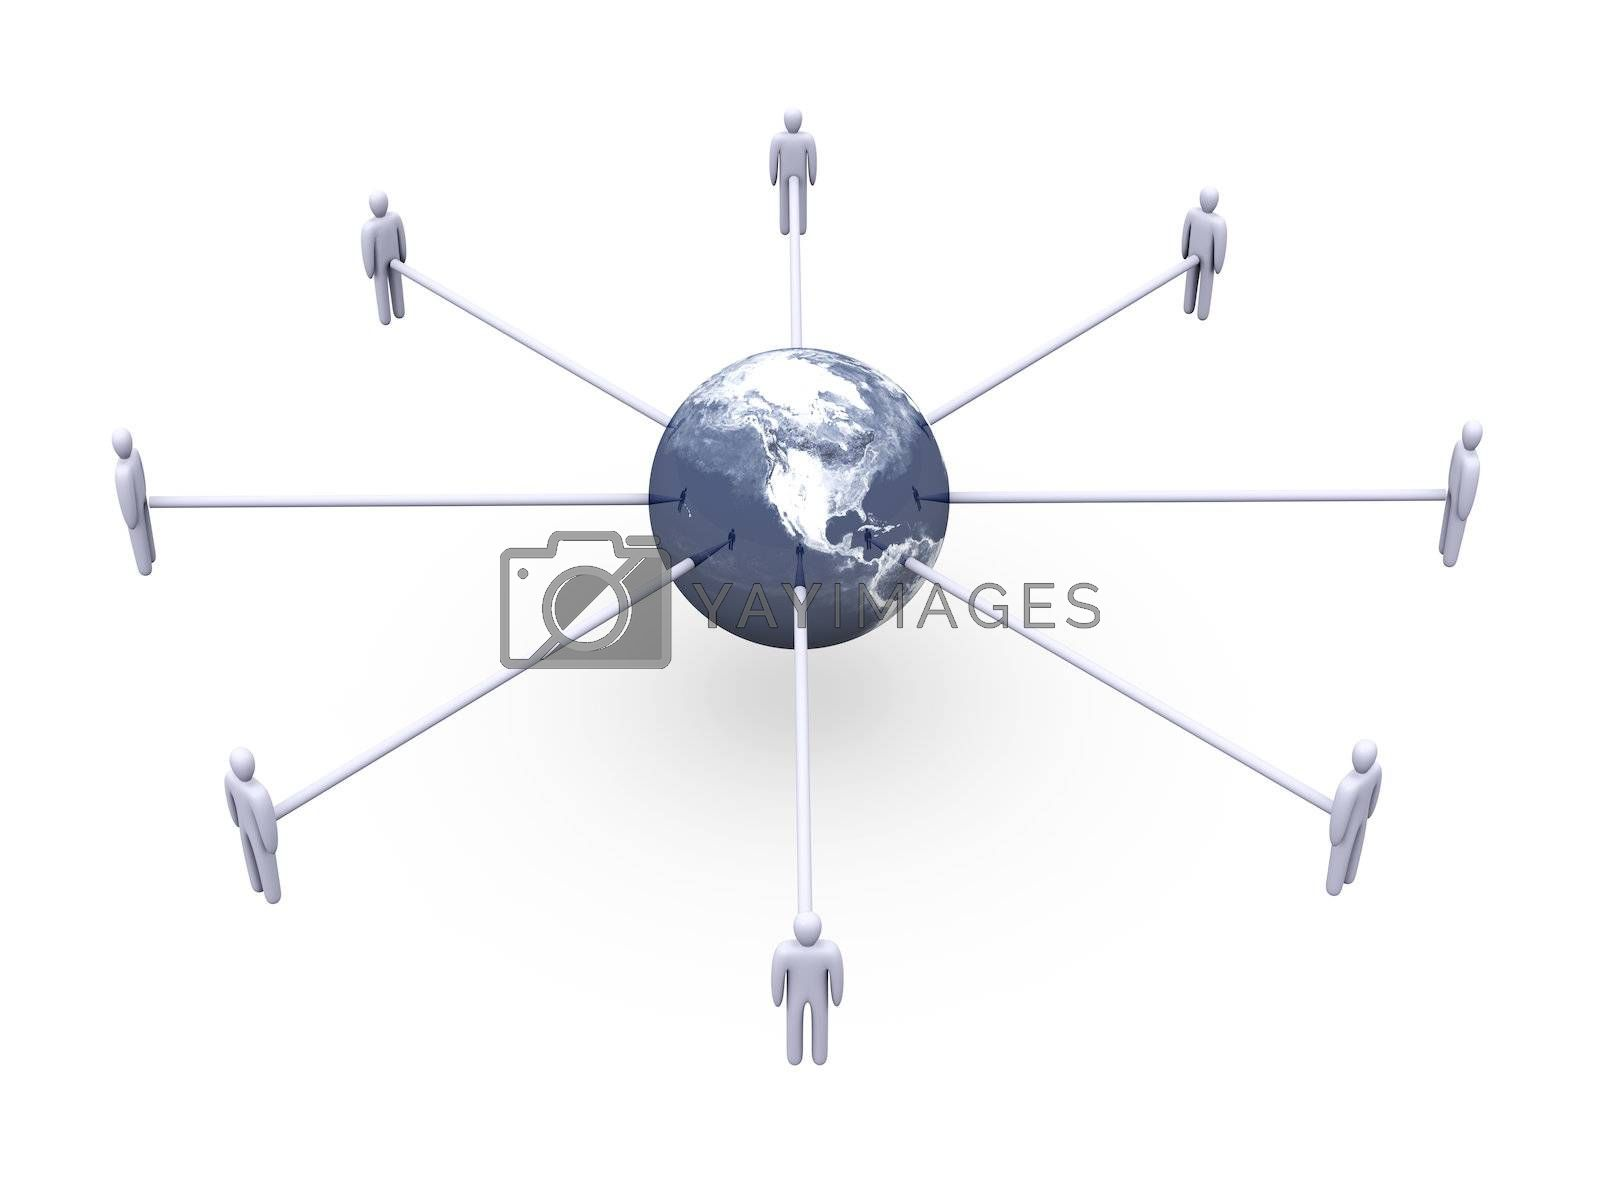 3D rendered Illustration. Isolated on white. Texture from NASA public domain Images / Visibleearth.